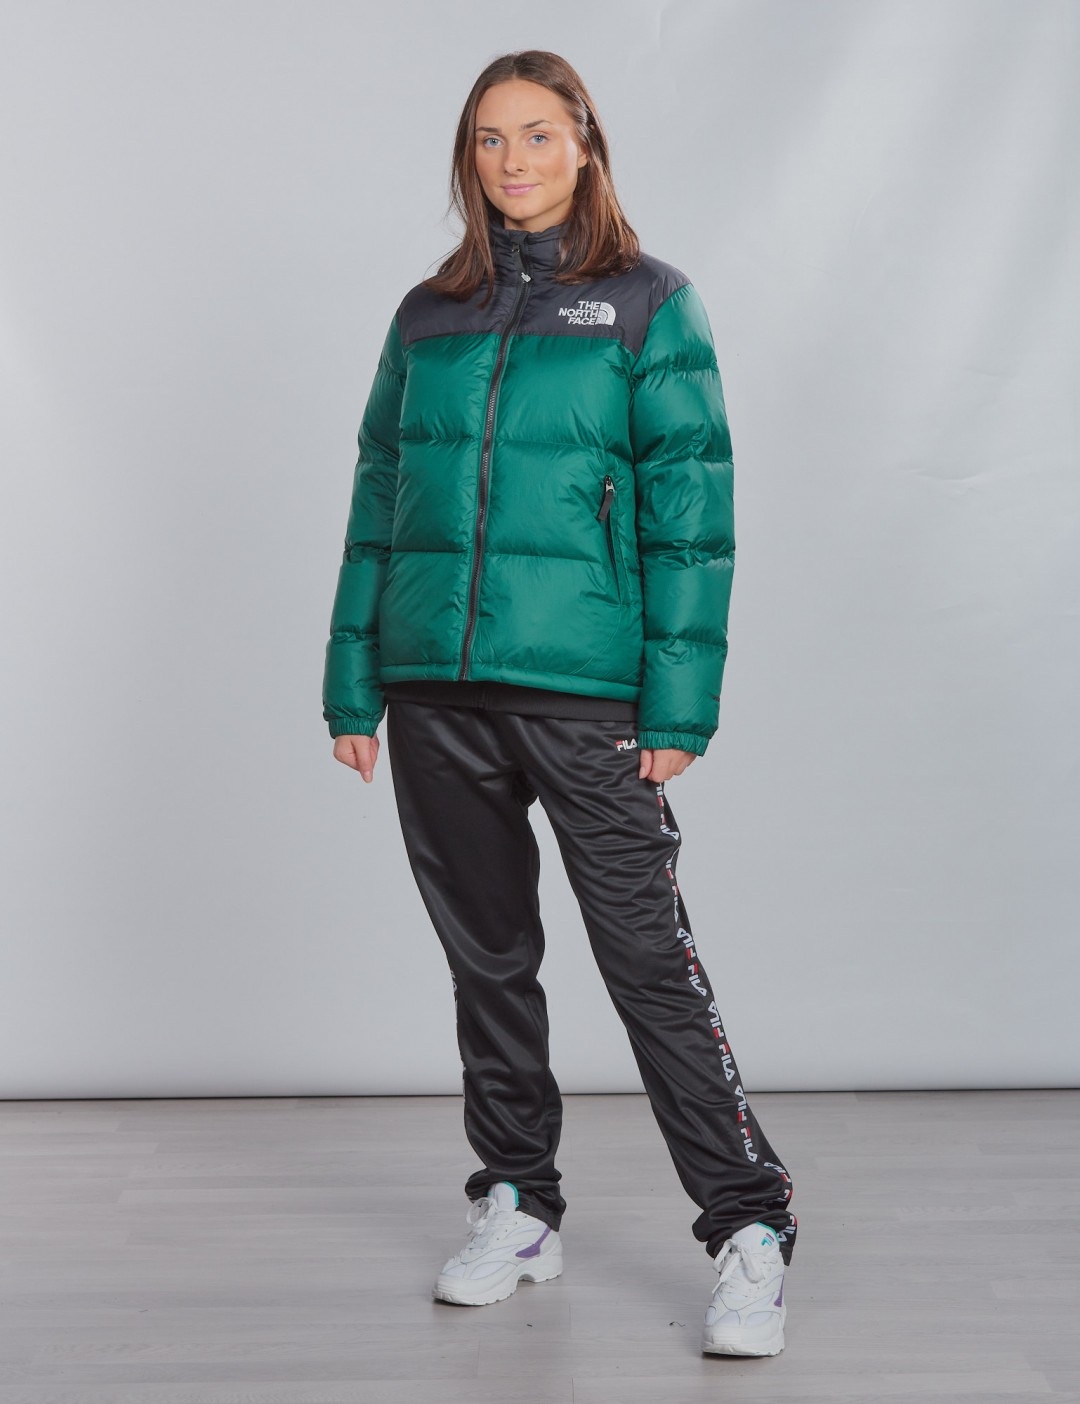 The North Face The North Face Retro Nuptse Jacket | Grailed